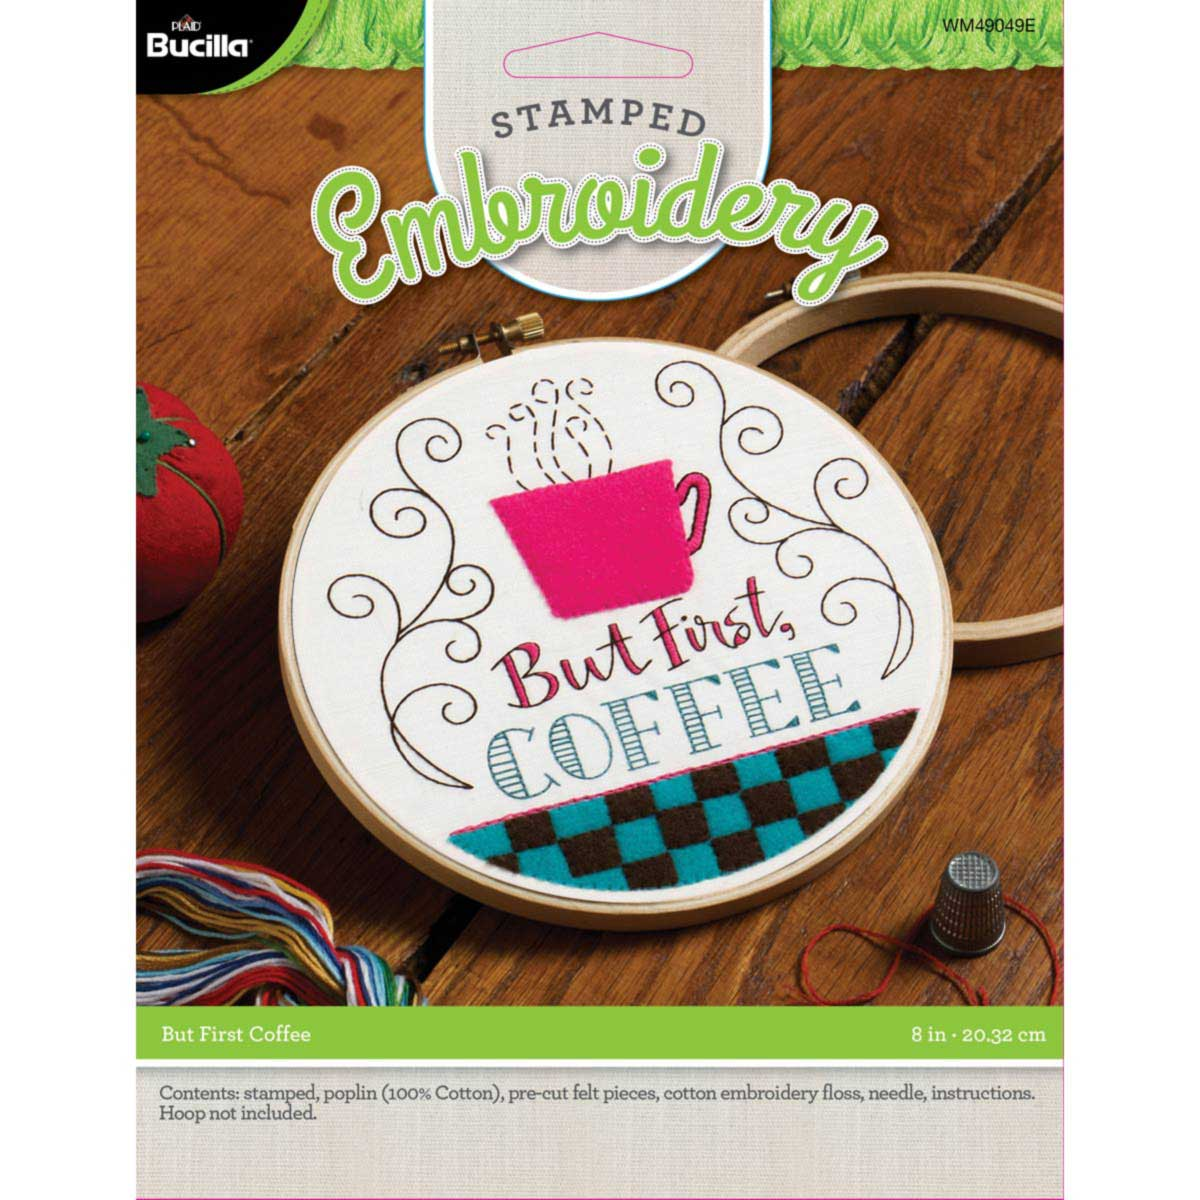 Bucilla ® My 1st Stitch™ - Stamped Embroidery Kits - But First Coffee